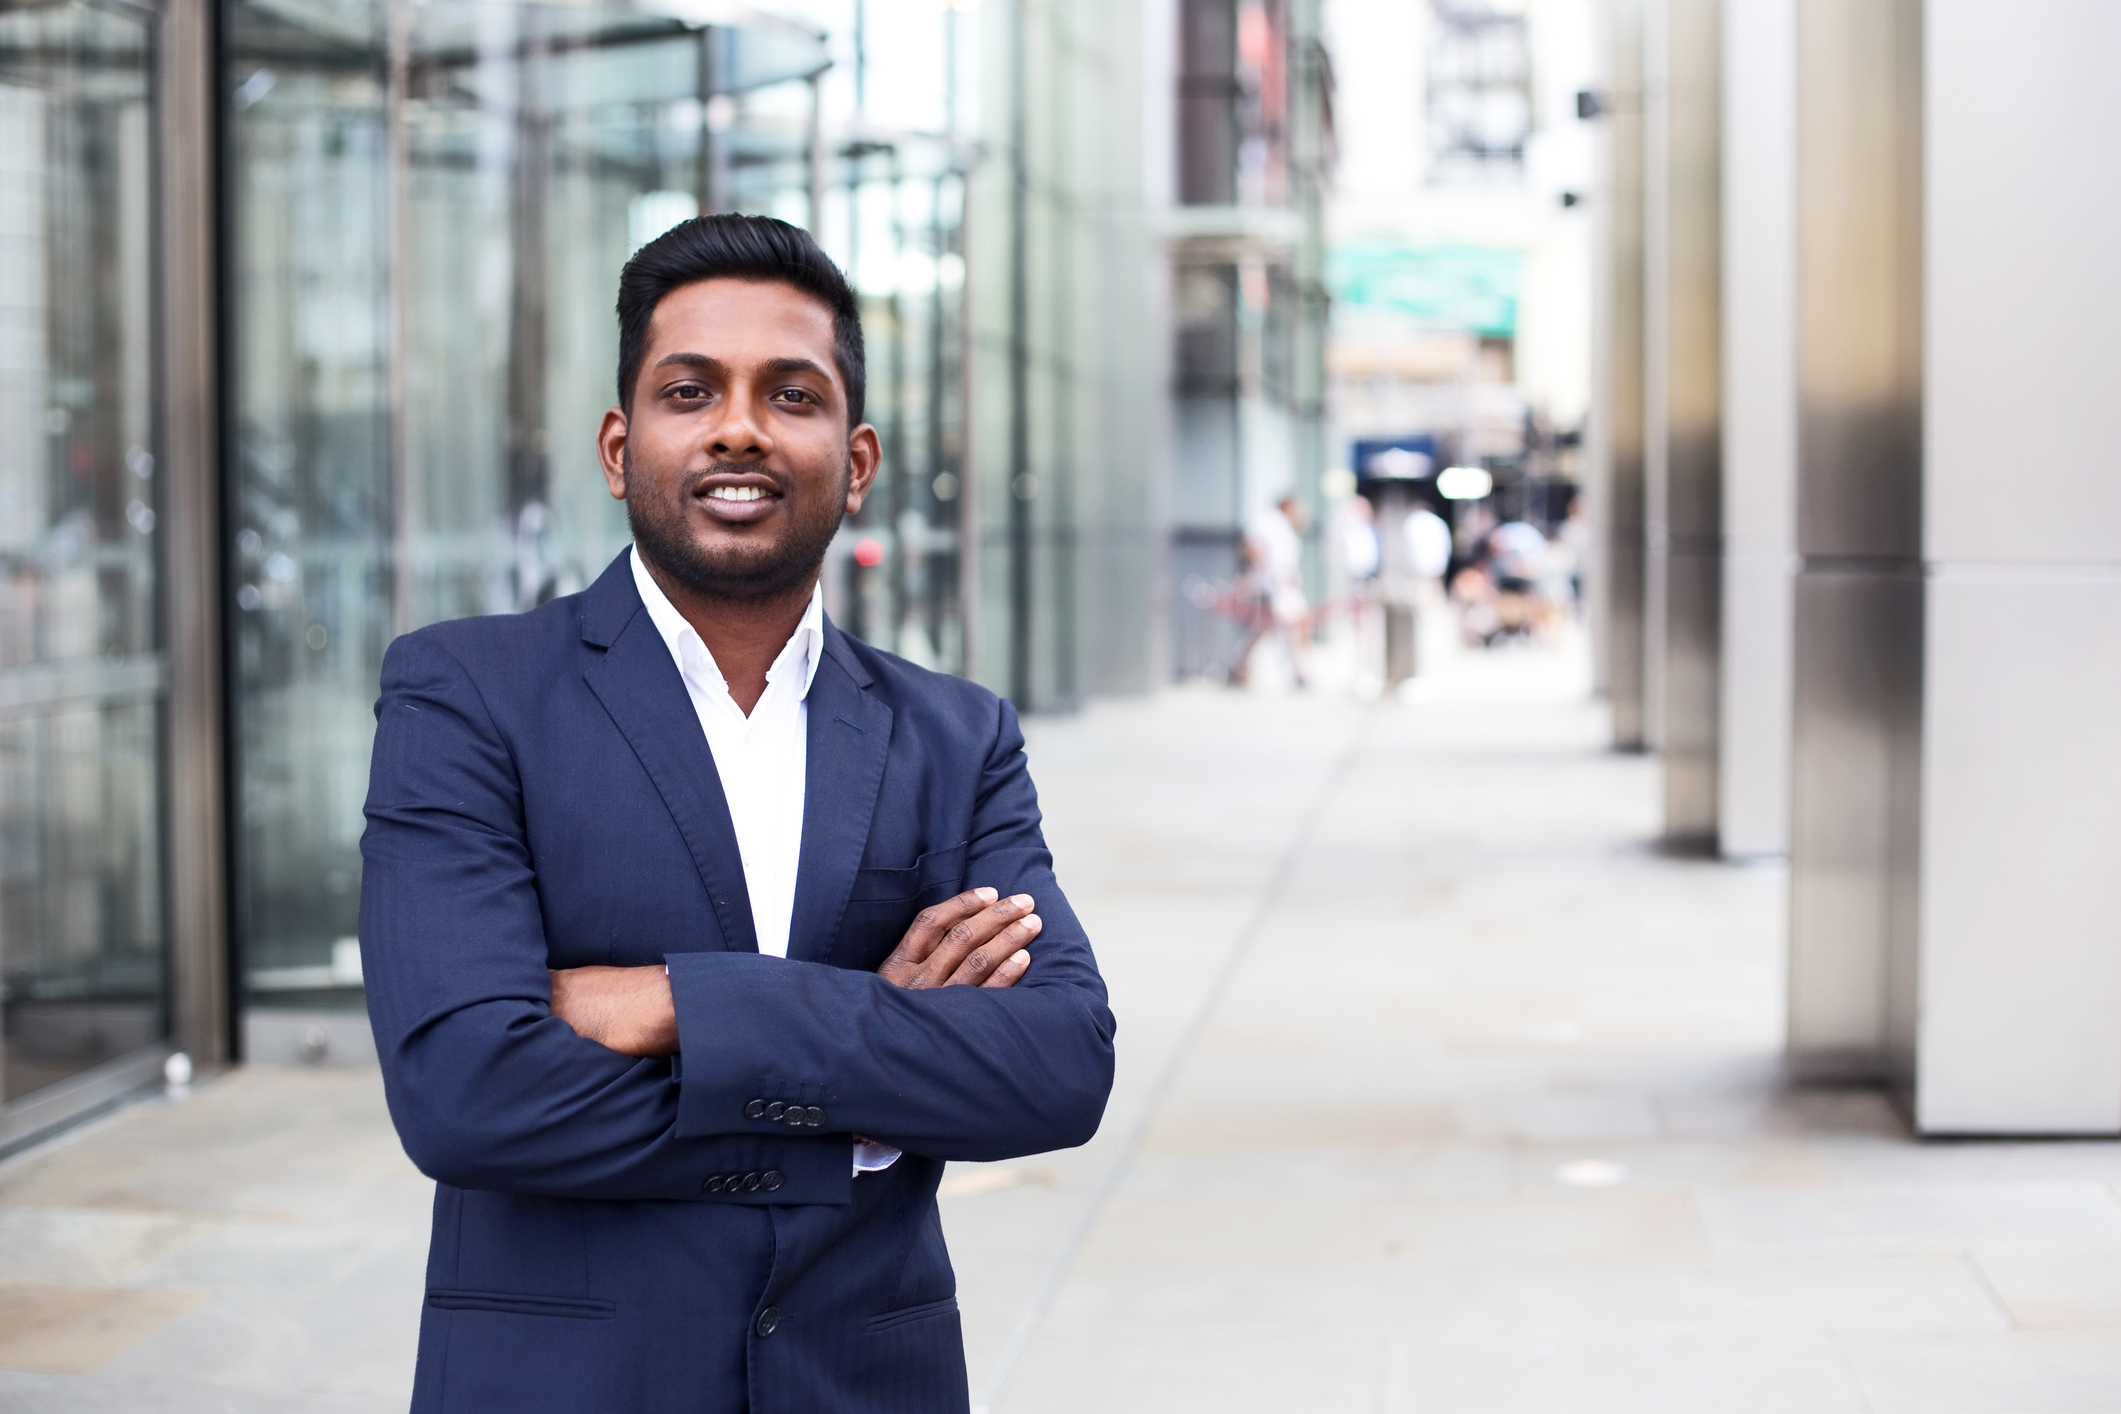 Stock photo of a businessman standing with arms crossed